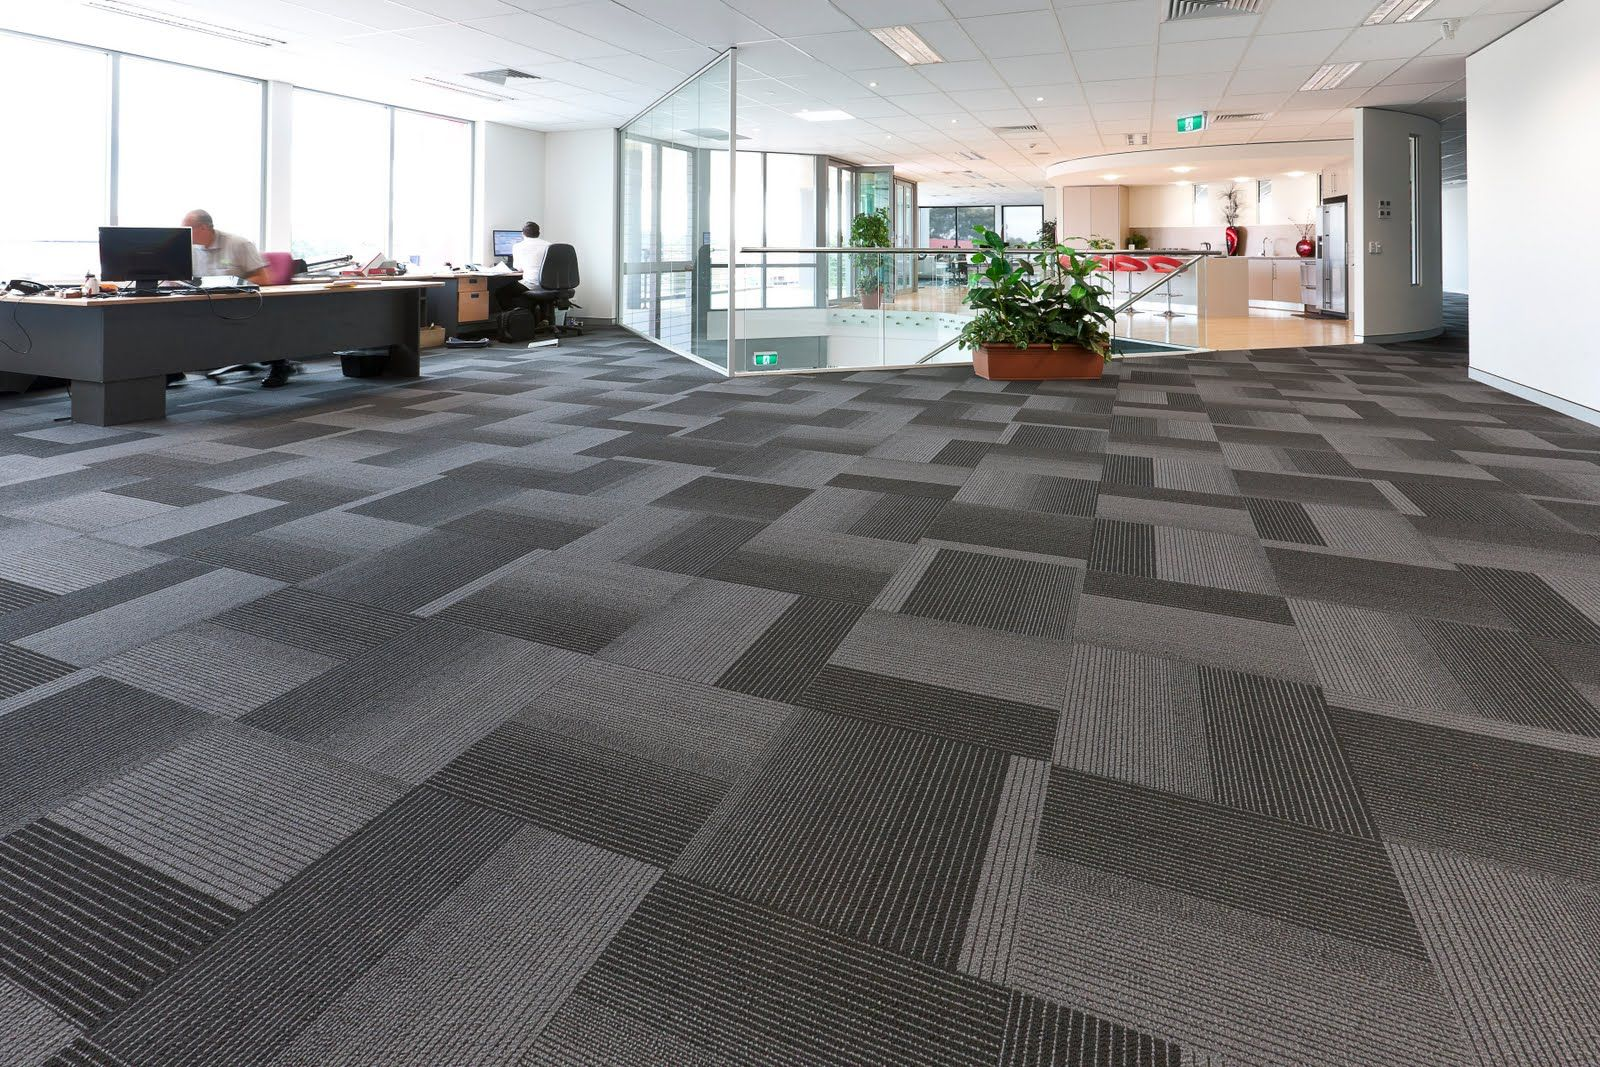 Broadloom Or Carpet Tiles What Is Perfect For Office Floor